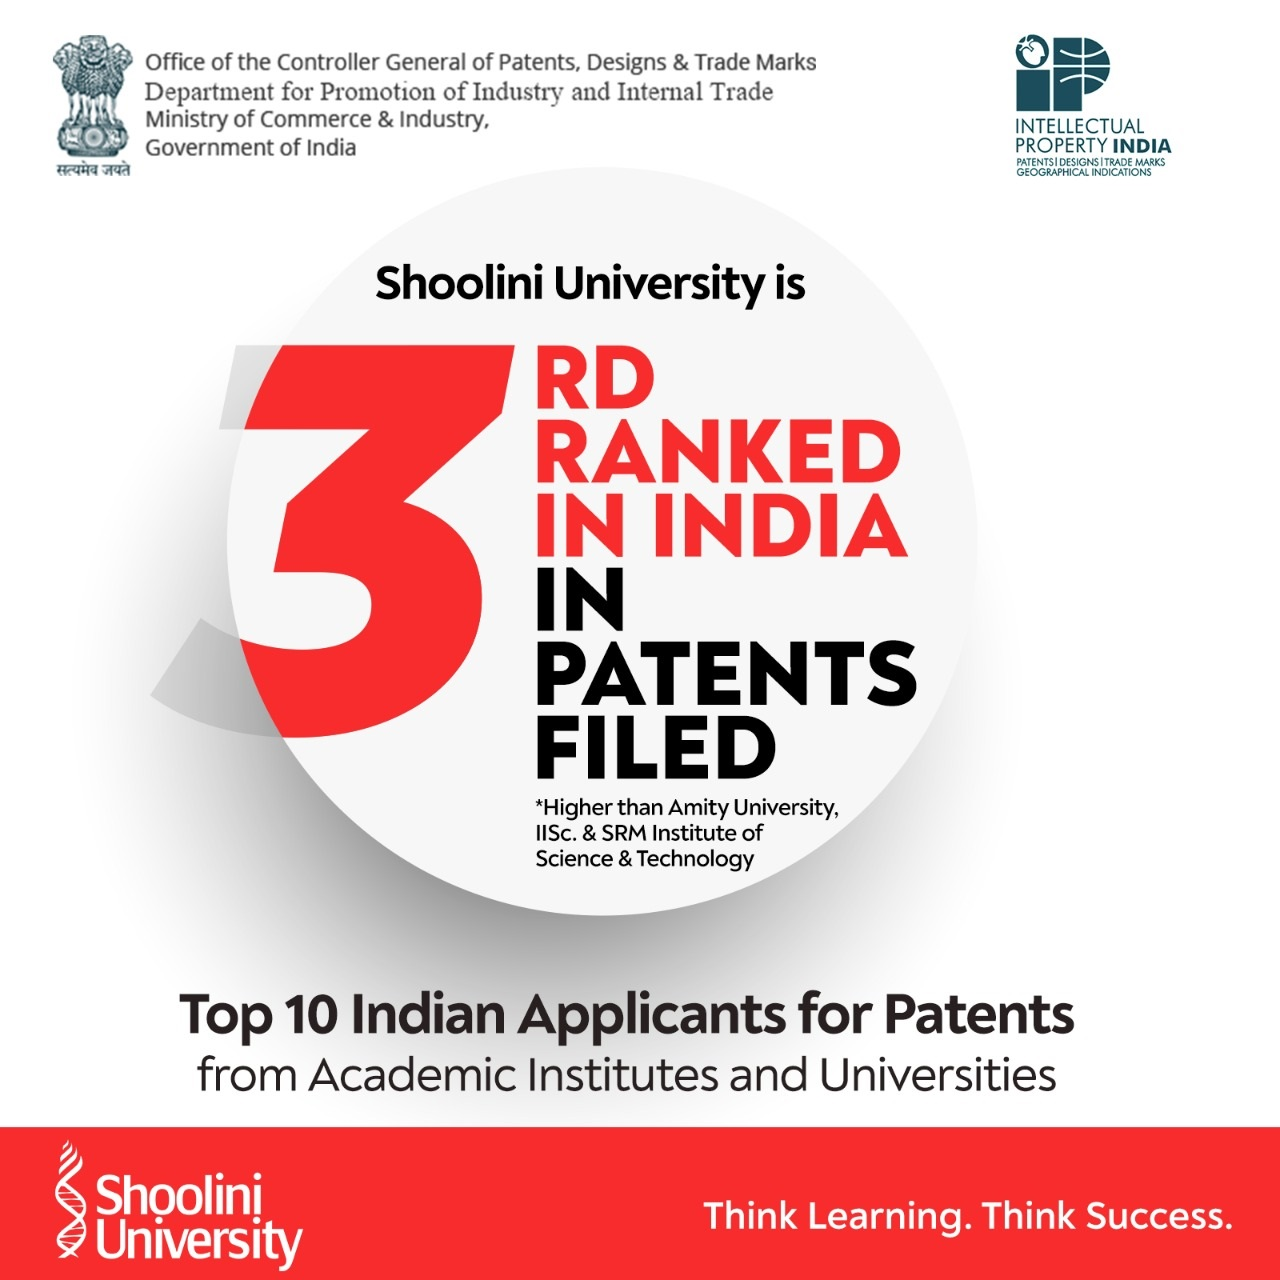 Patent filing: Shoolini is 3rd in country